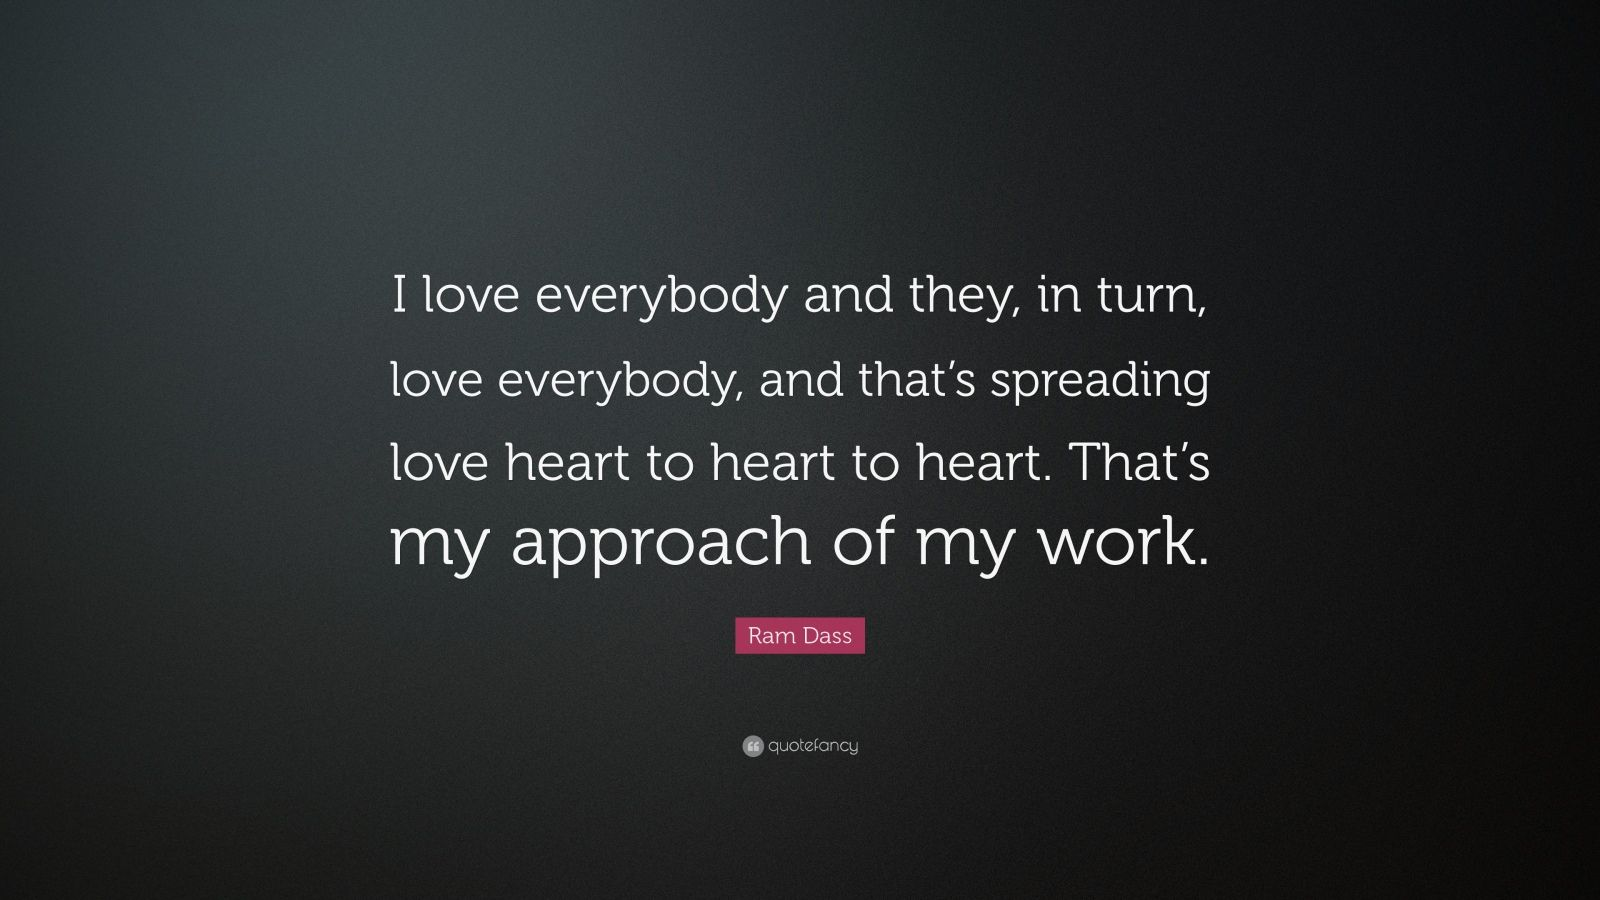 """Ram Dass Quote: """"I love everybody and they, in turn, love everybody, and that's spreading love heart to heart to heart. That's my approach of my work."""""""